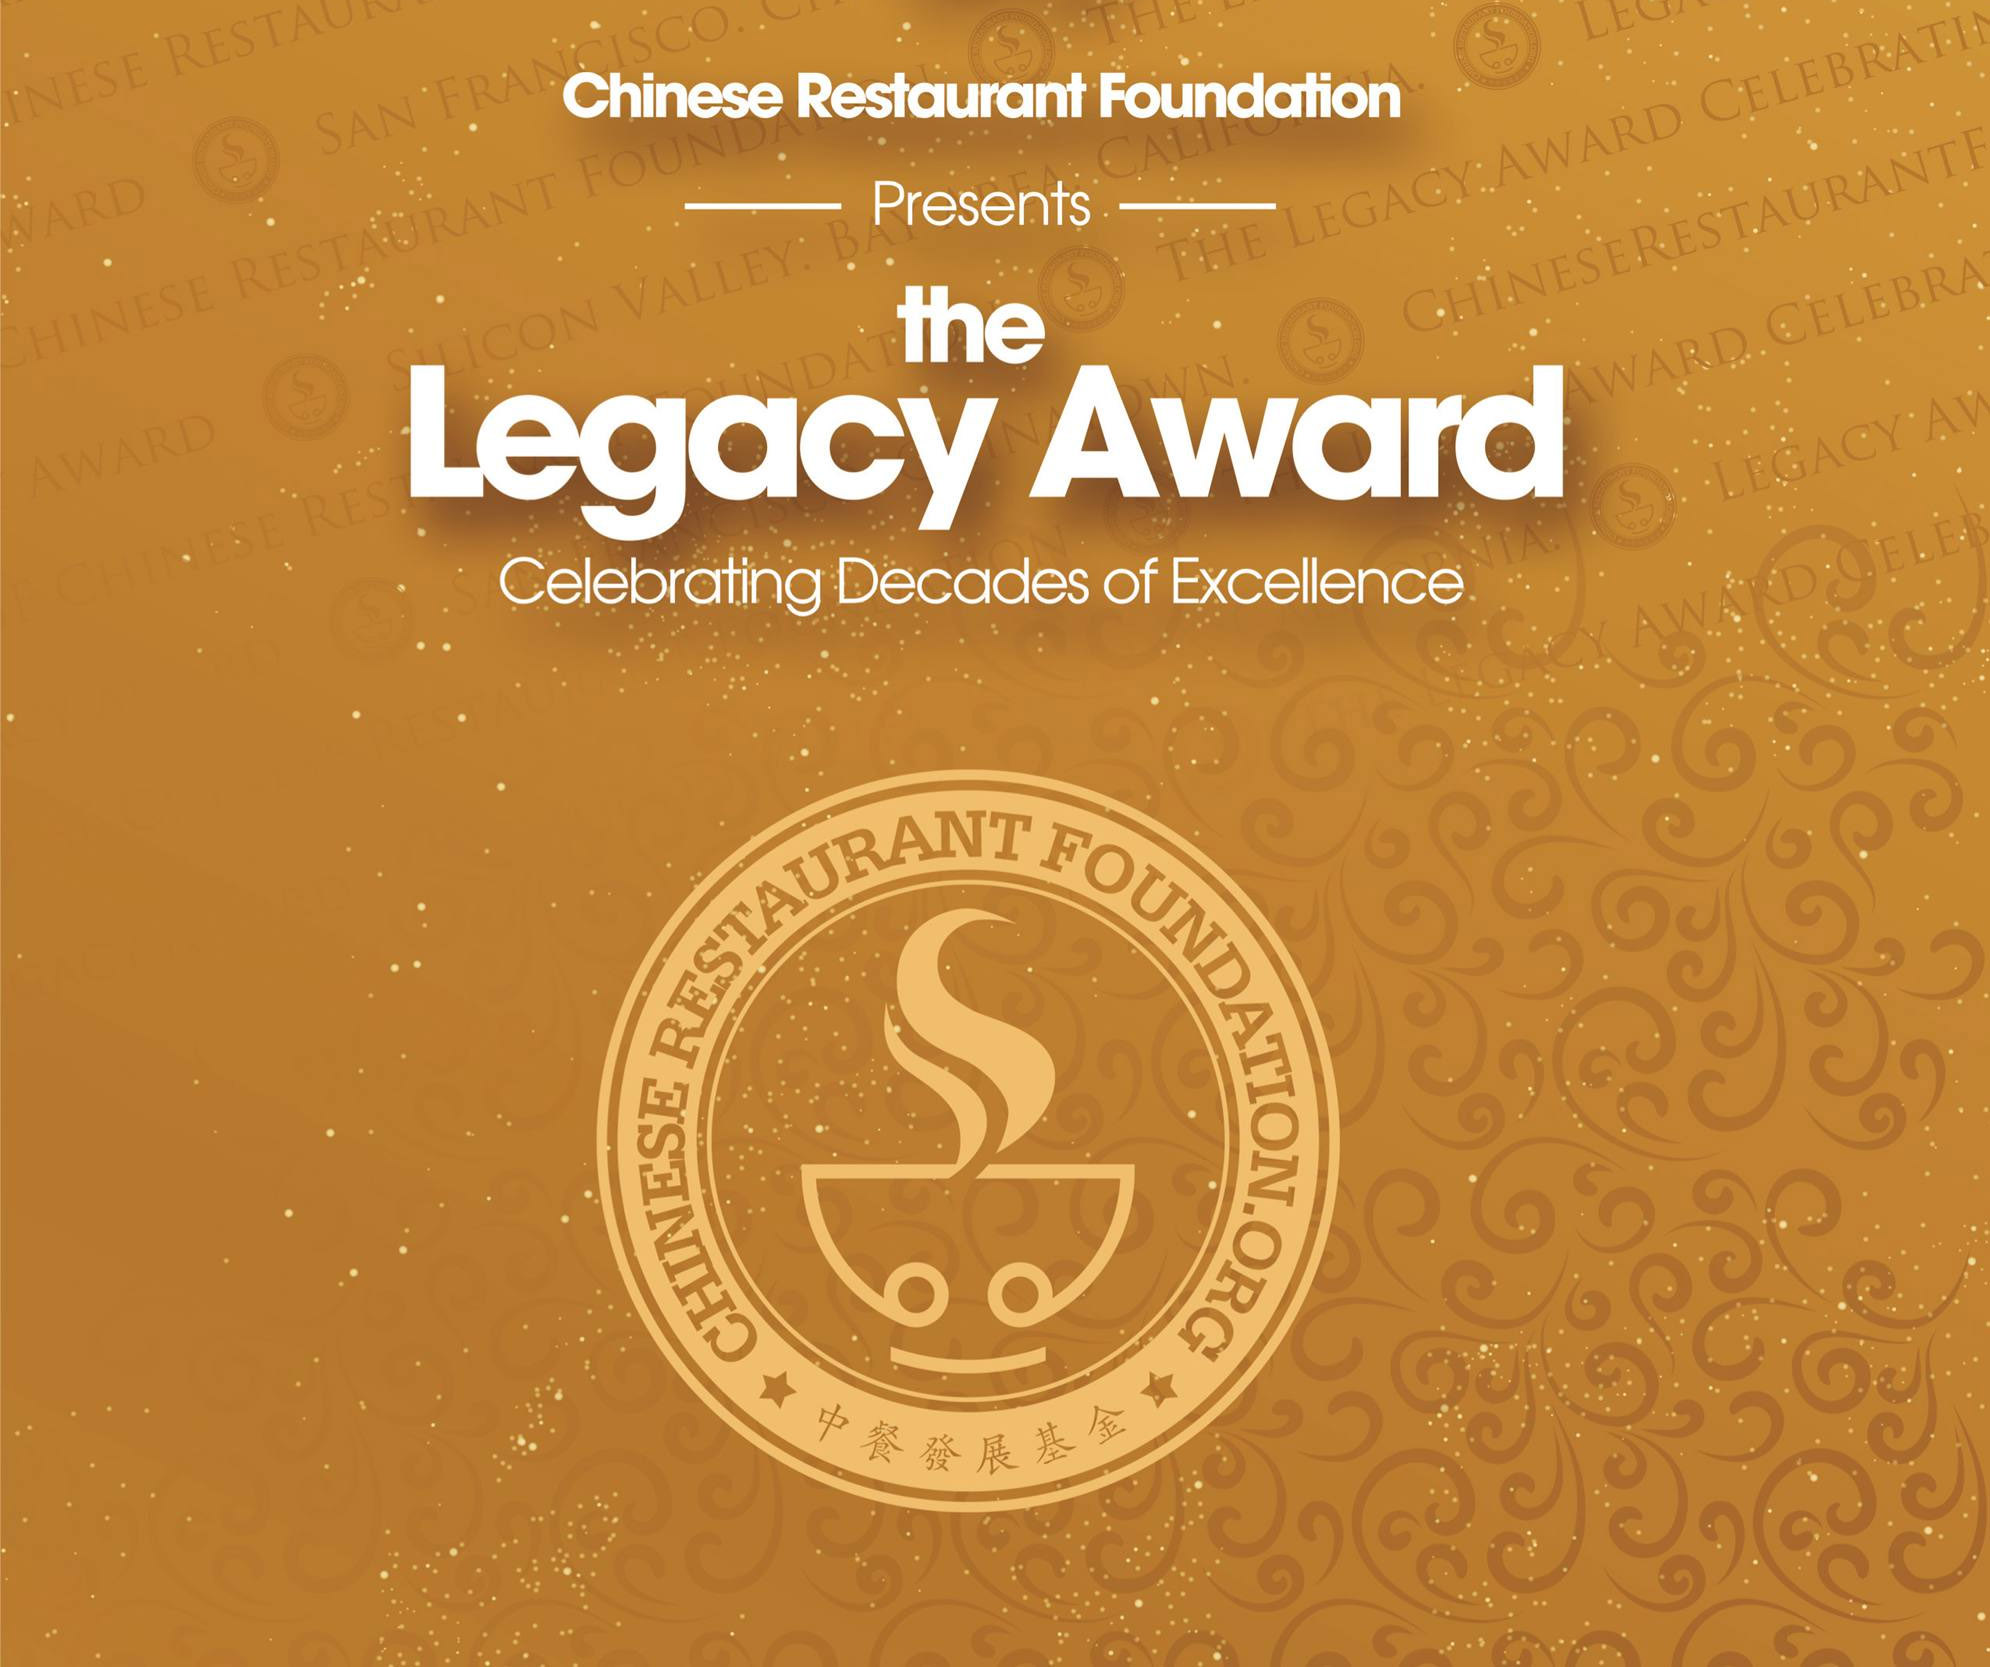 The Longest Running Chinese Restaurants In America Honored With The Legacy Award